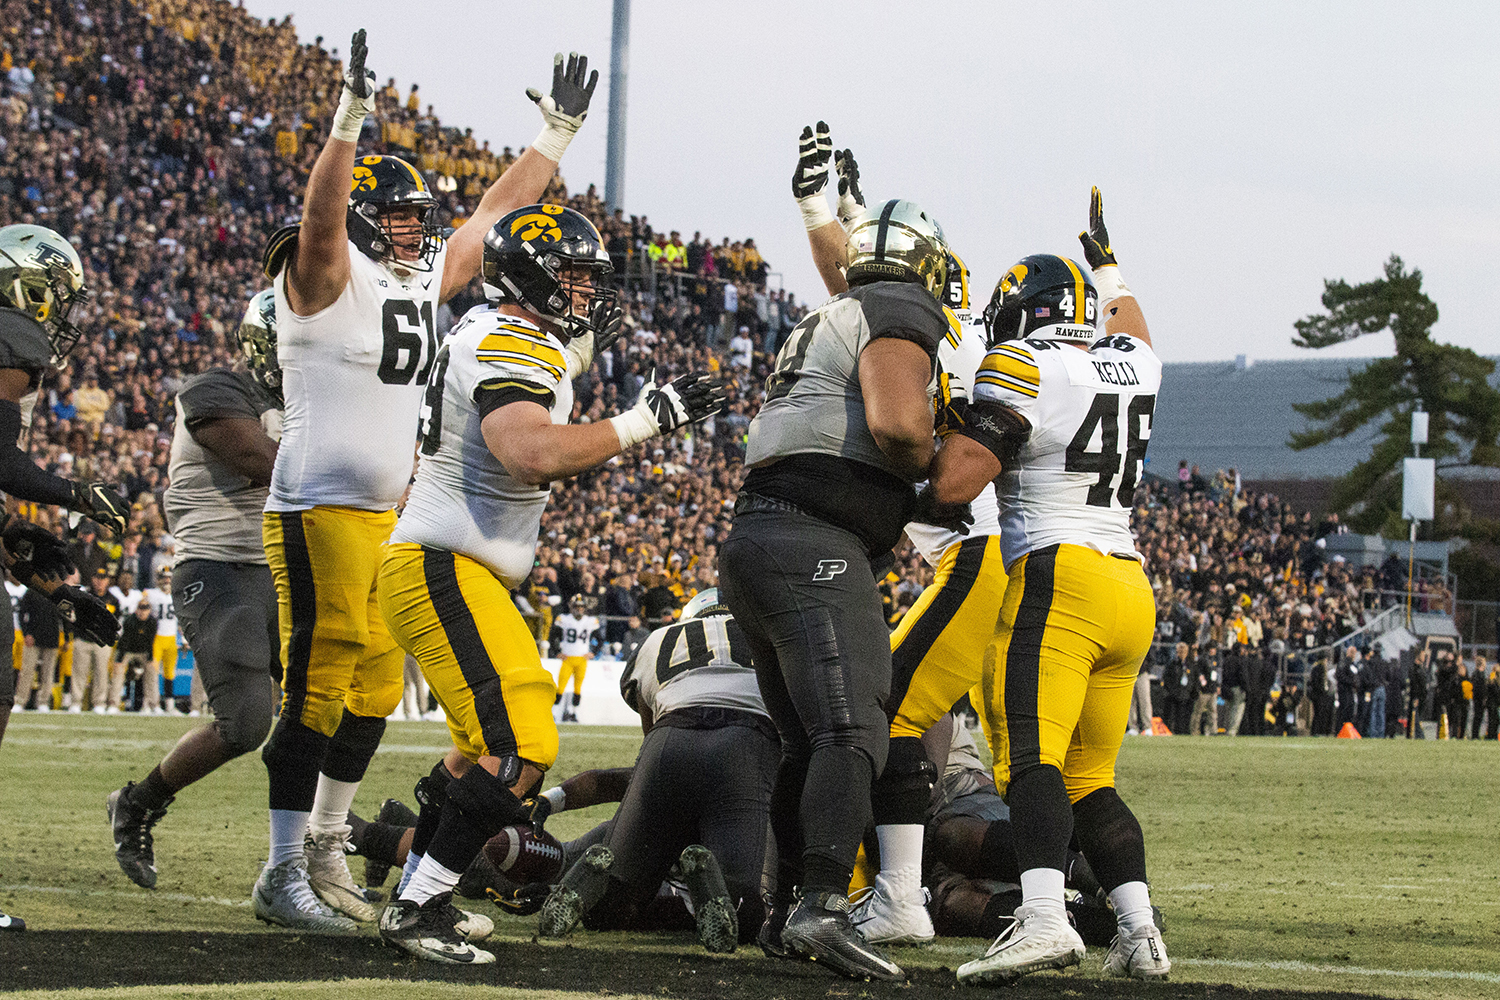 Iowa+players+signal+a+touchdown+during+the+Iowa%2FPurdue+game+at+Ross-Ade+Stadium+in+West+Lafayette%2C+Ind.+on+Saturday%2C+November+3%2C+2018.+The+Boilermakers+defeated+the+Hawkeyes+38-36.+